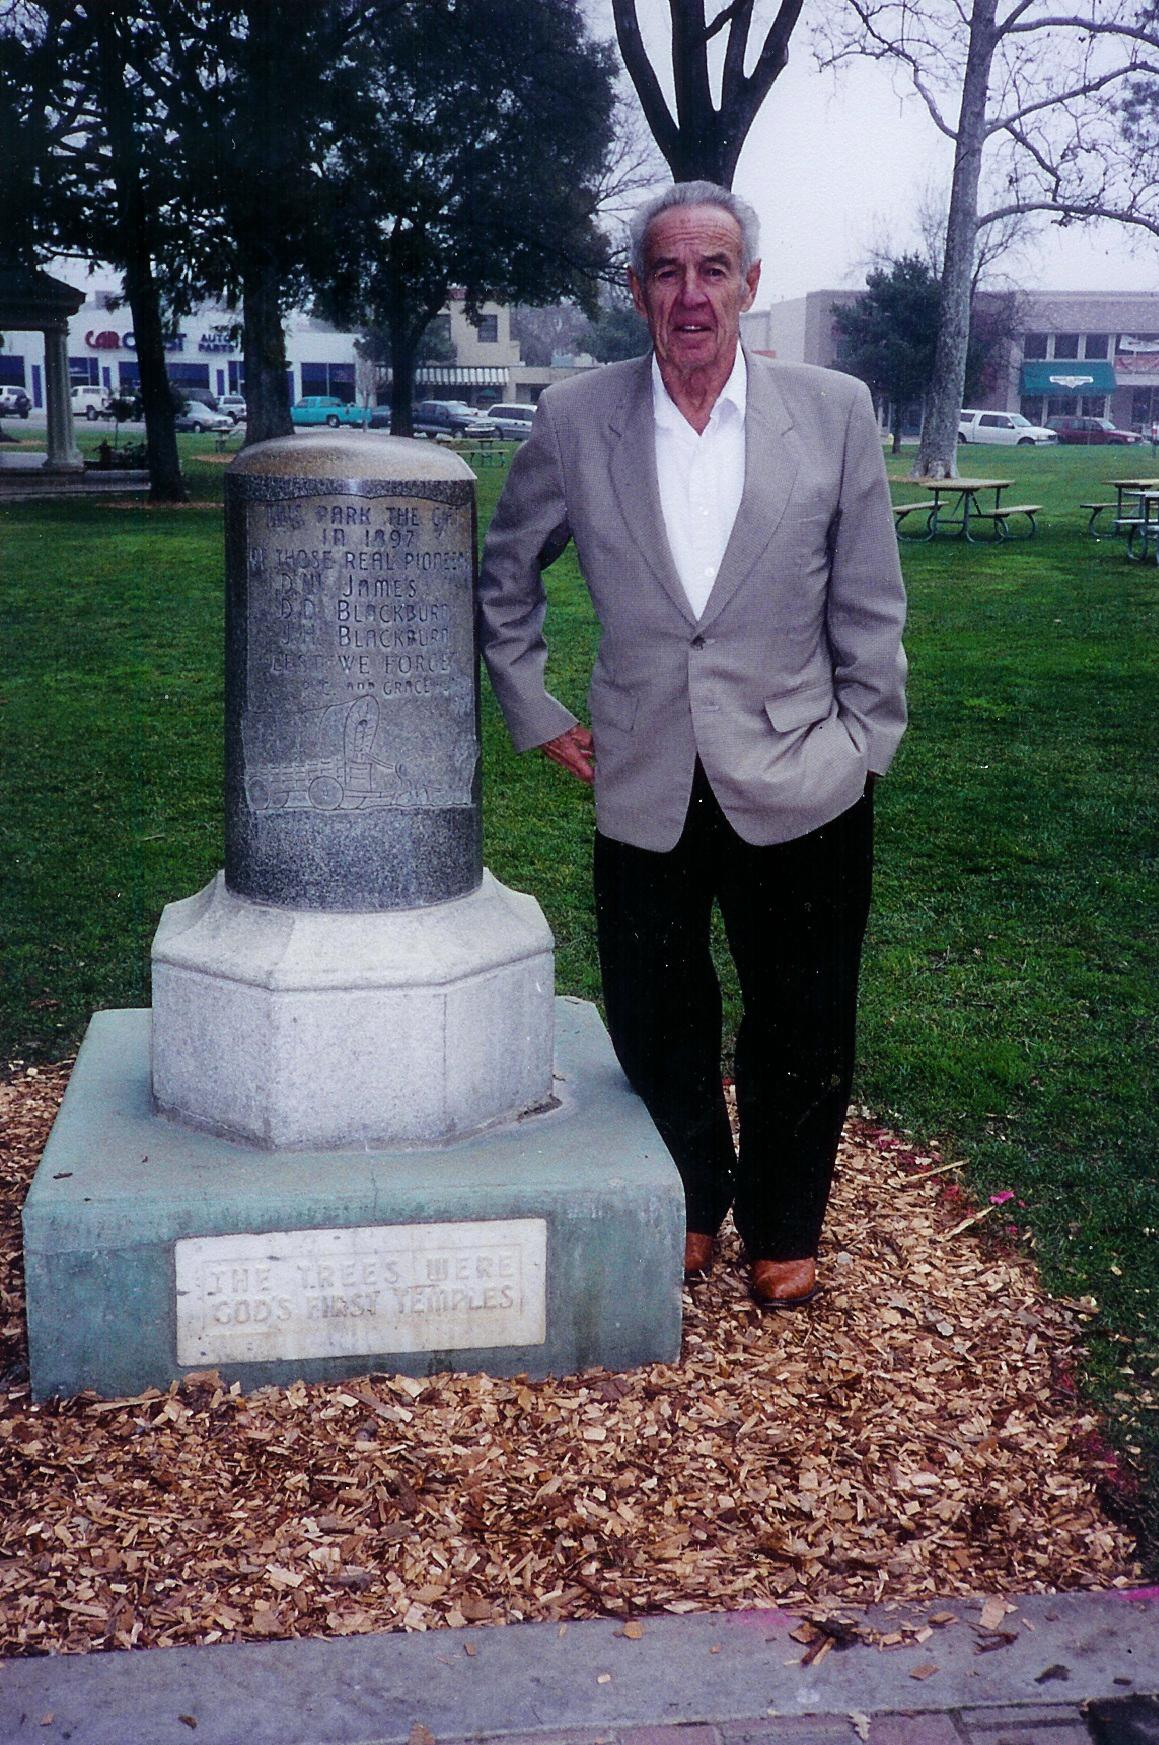 Judge James R. Ross beside the historical monument that commemorates his cousin, Drury Woodson James, founder of Paso Robles California. The memorial stands in the park D.W. James donated to the city.